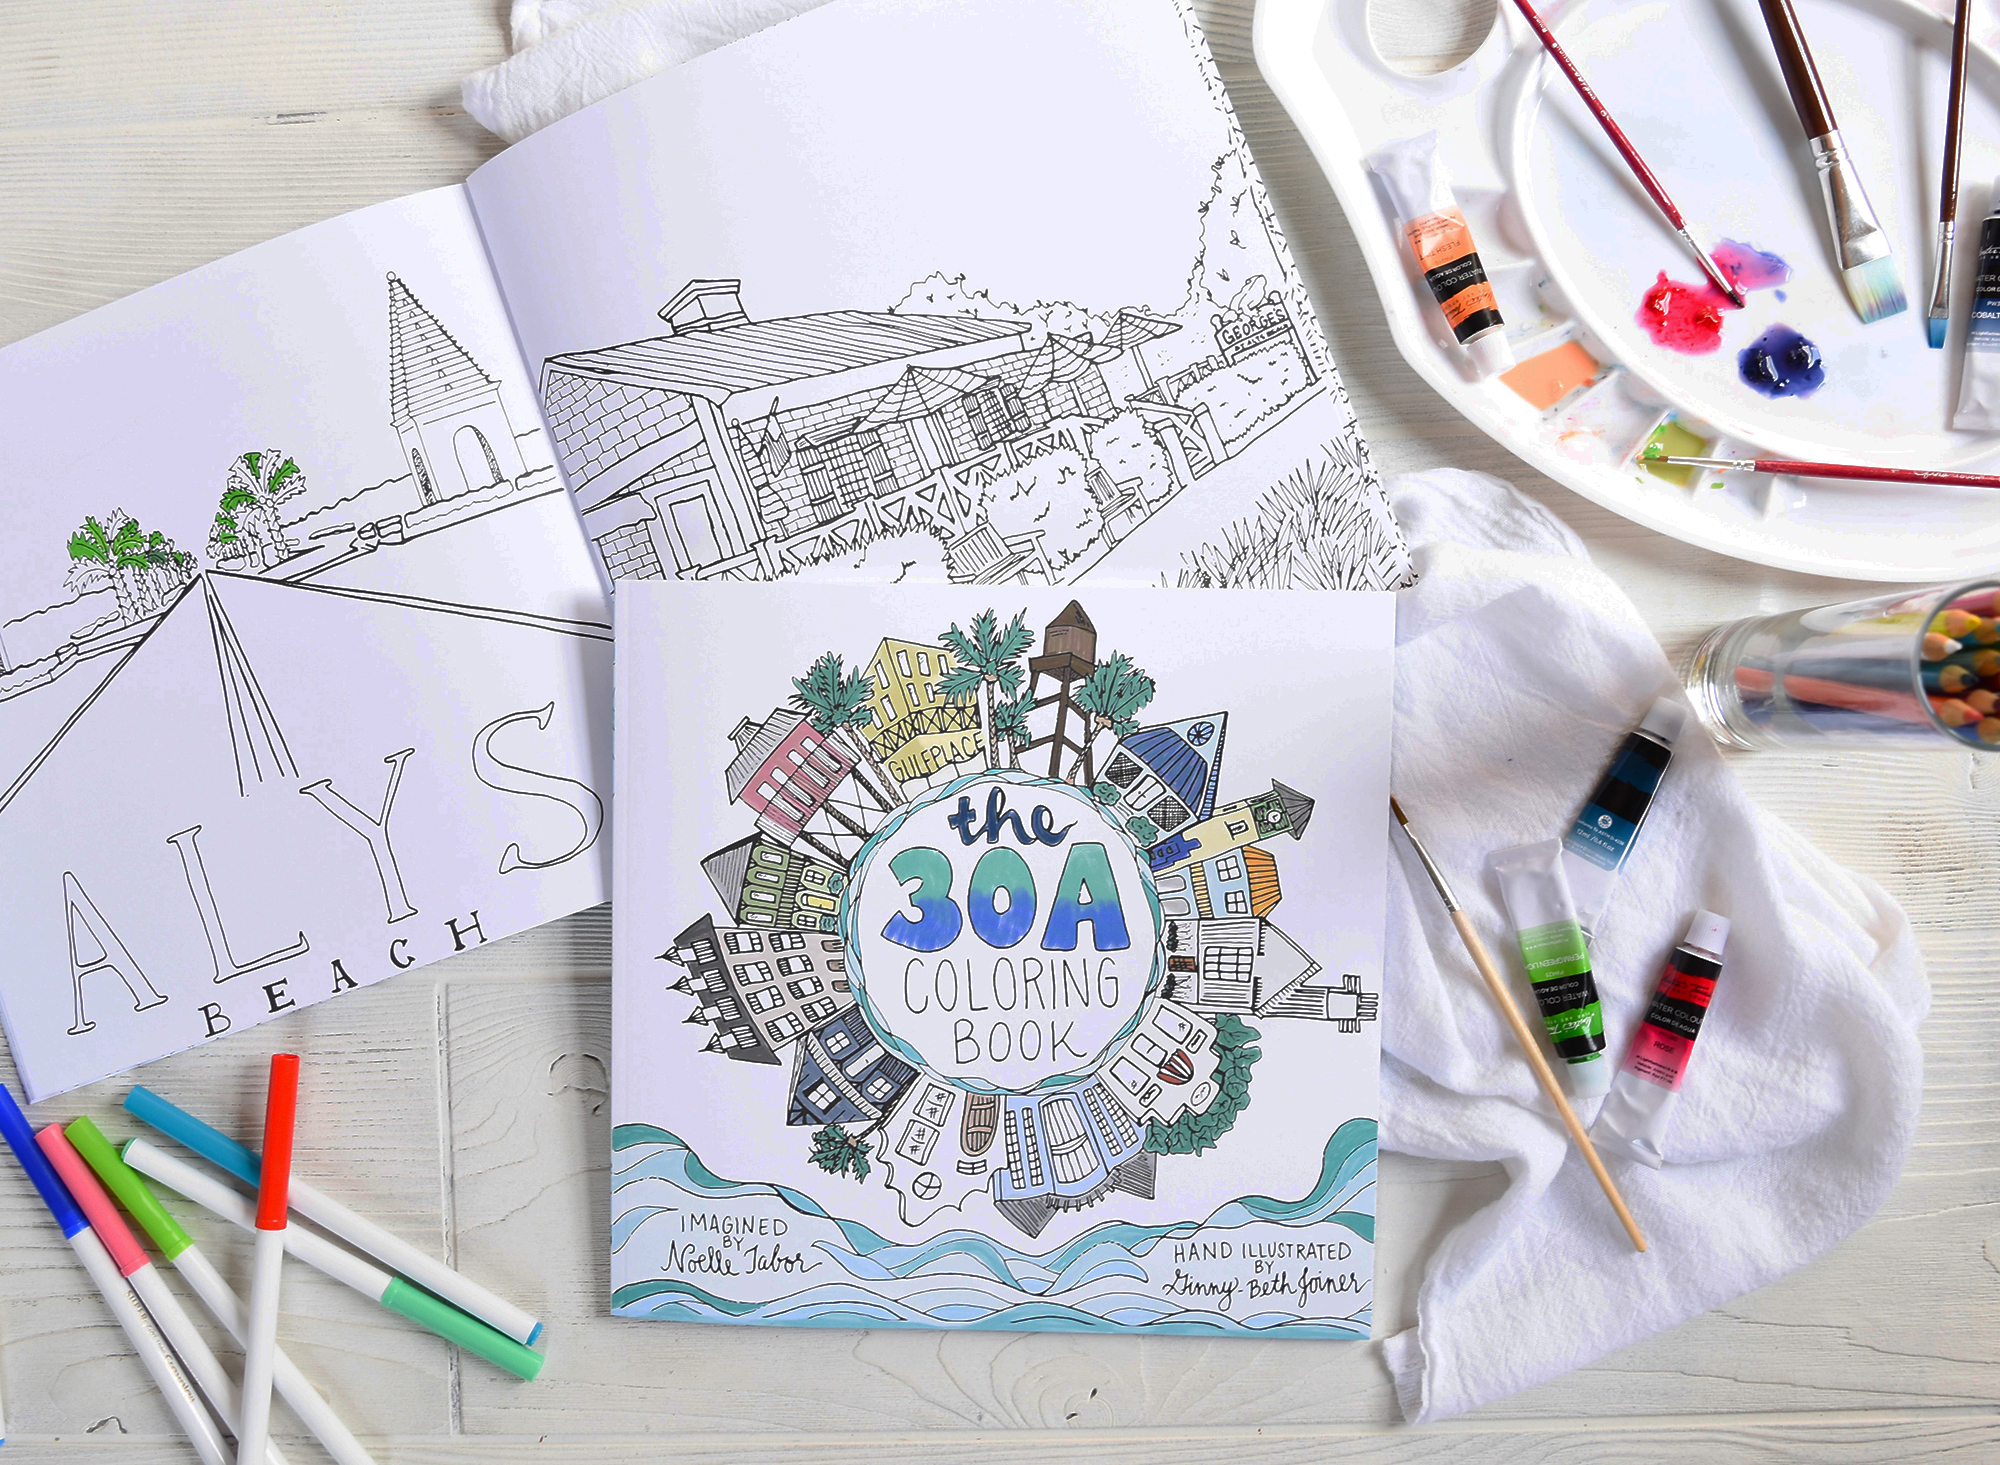 5 Tips for an Affordable 30A Trip - The 30A Coloring Book